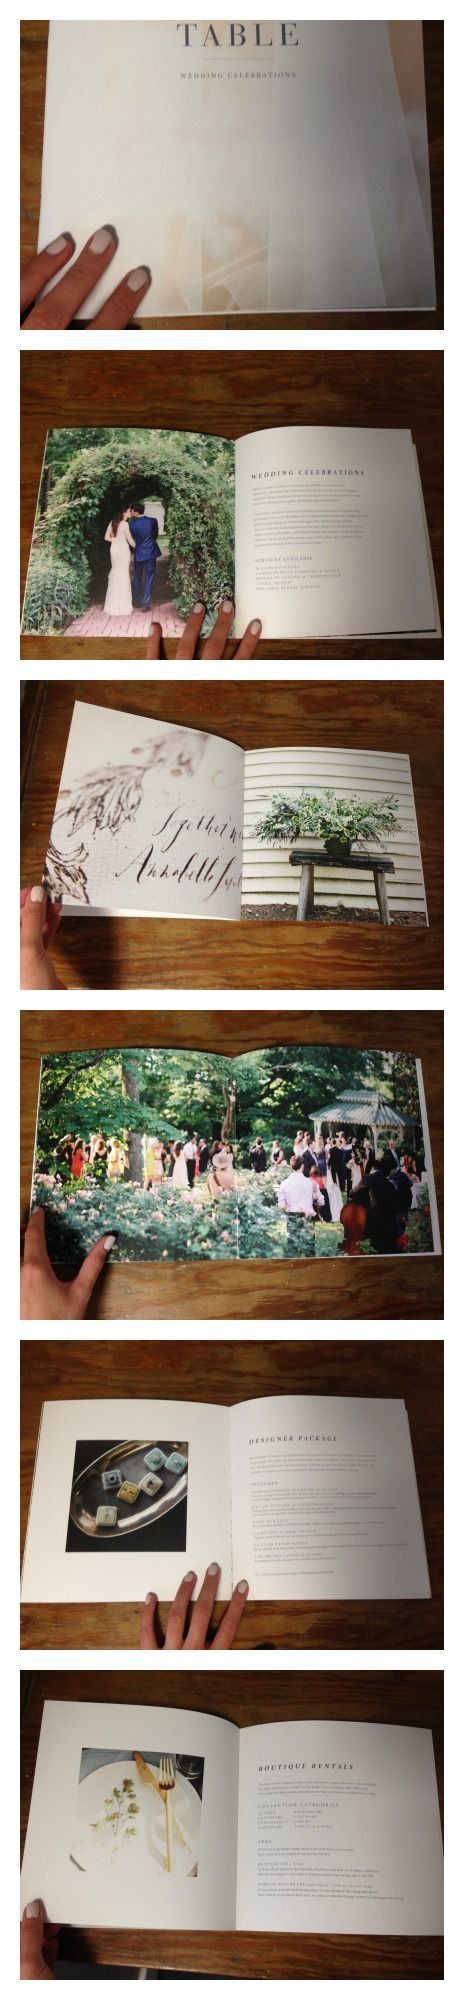 Beautiful wedding planner informational booklet with saddle stitch binding. Gorgeous photographs. @12thTable